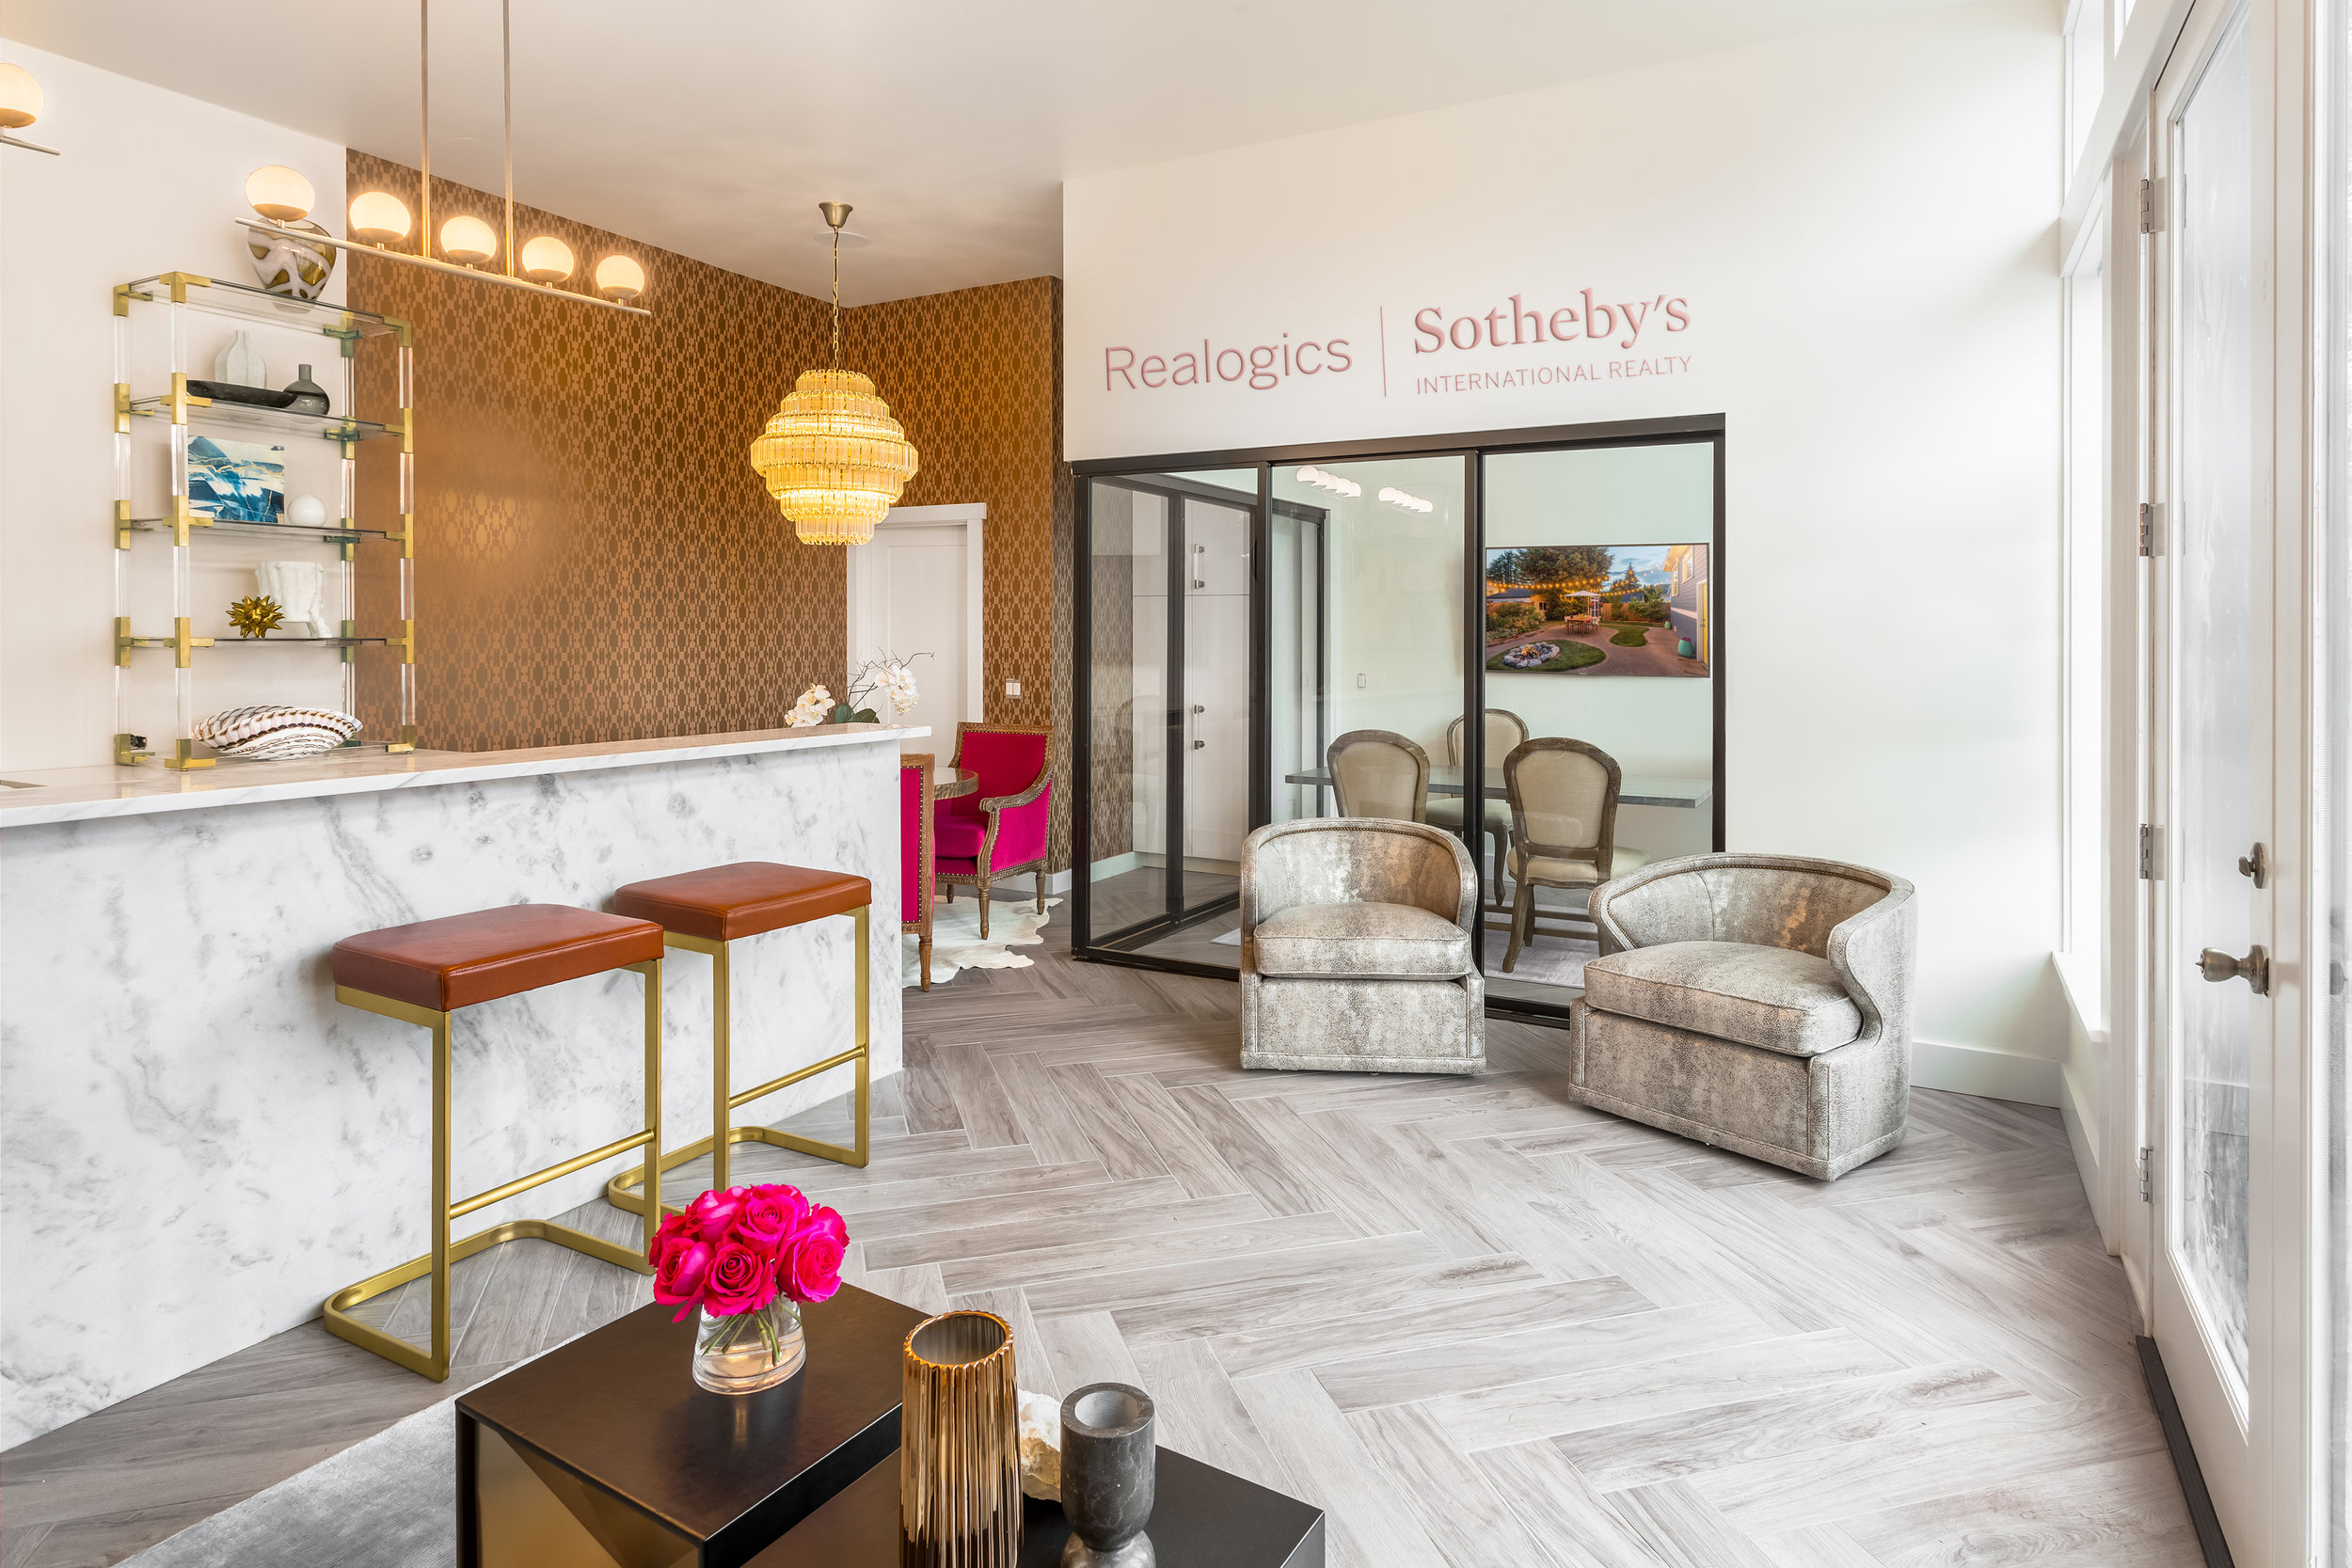 Realogics Sotheby's International Realty, Tammie Chi, Calyx Living